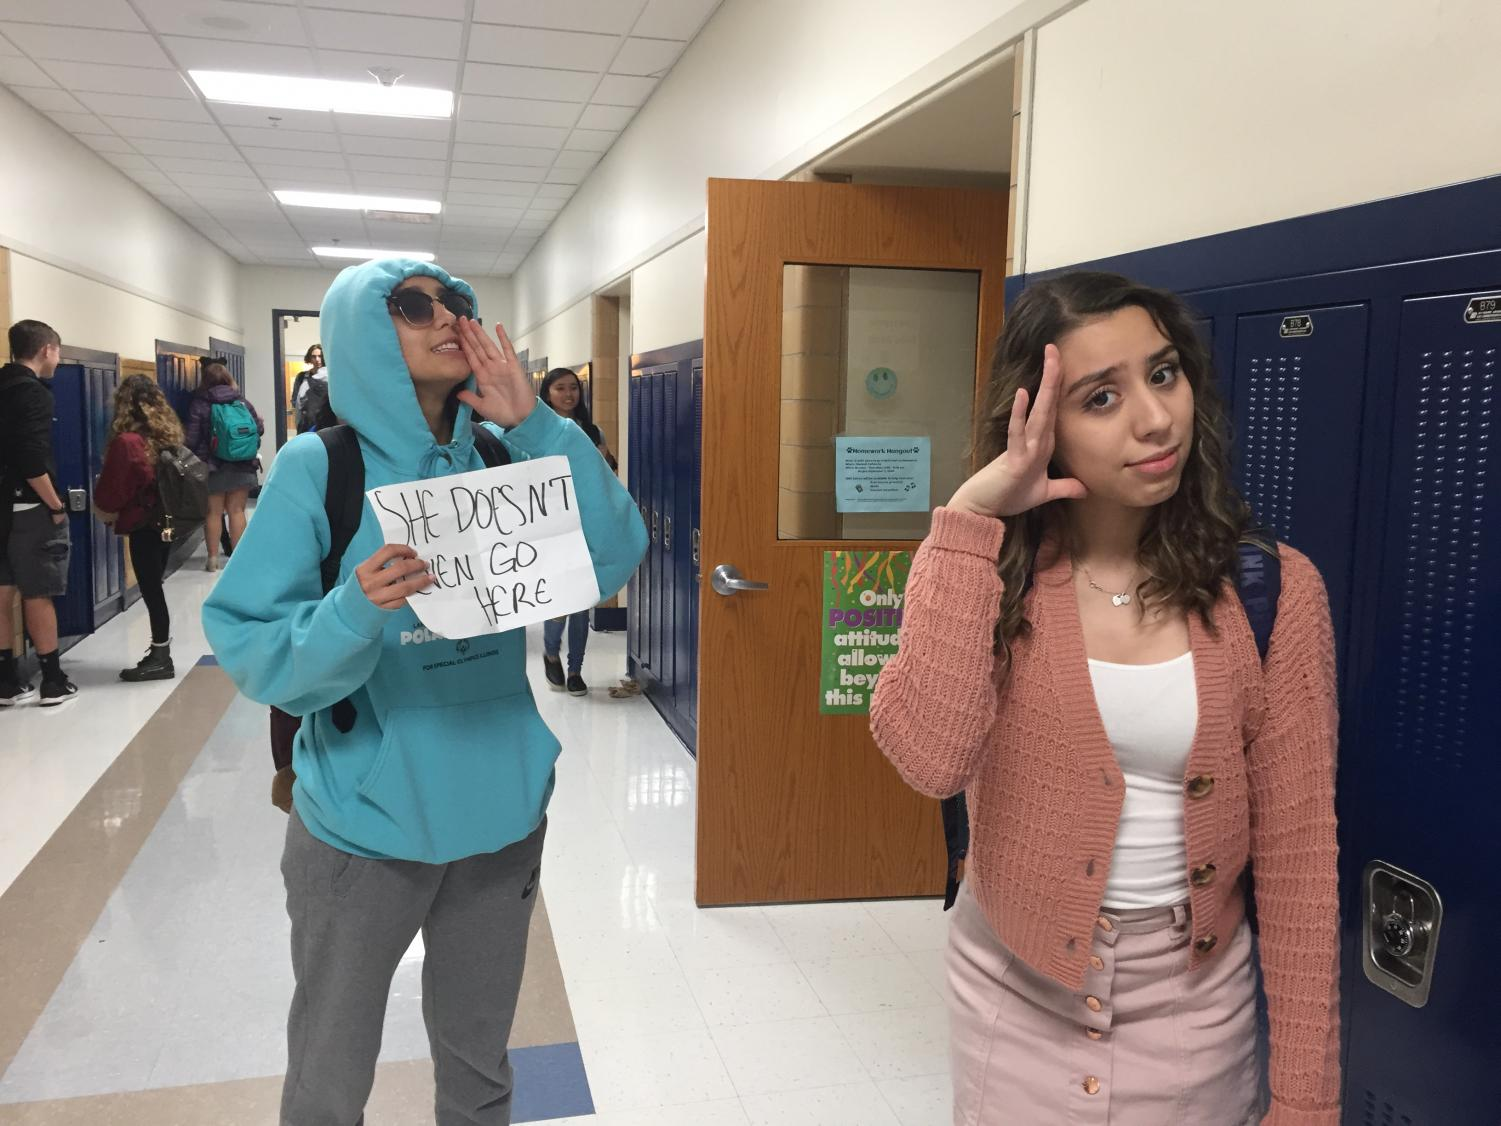 Homecoming Queen senior Cassandra Hines and junior Daniela Ulloa, dressed up for Thursday's Hollywood Celebrity theme as Damian and Gretchen from Mean Girls.